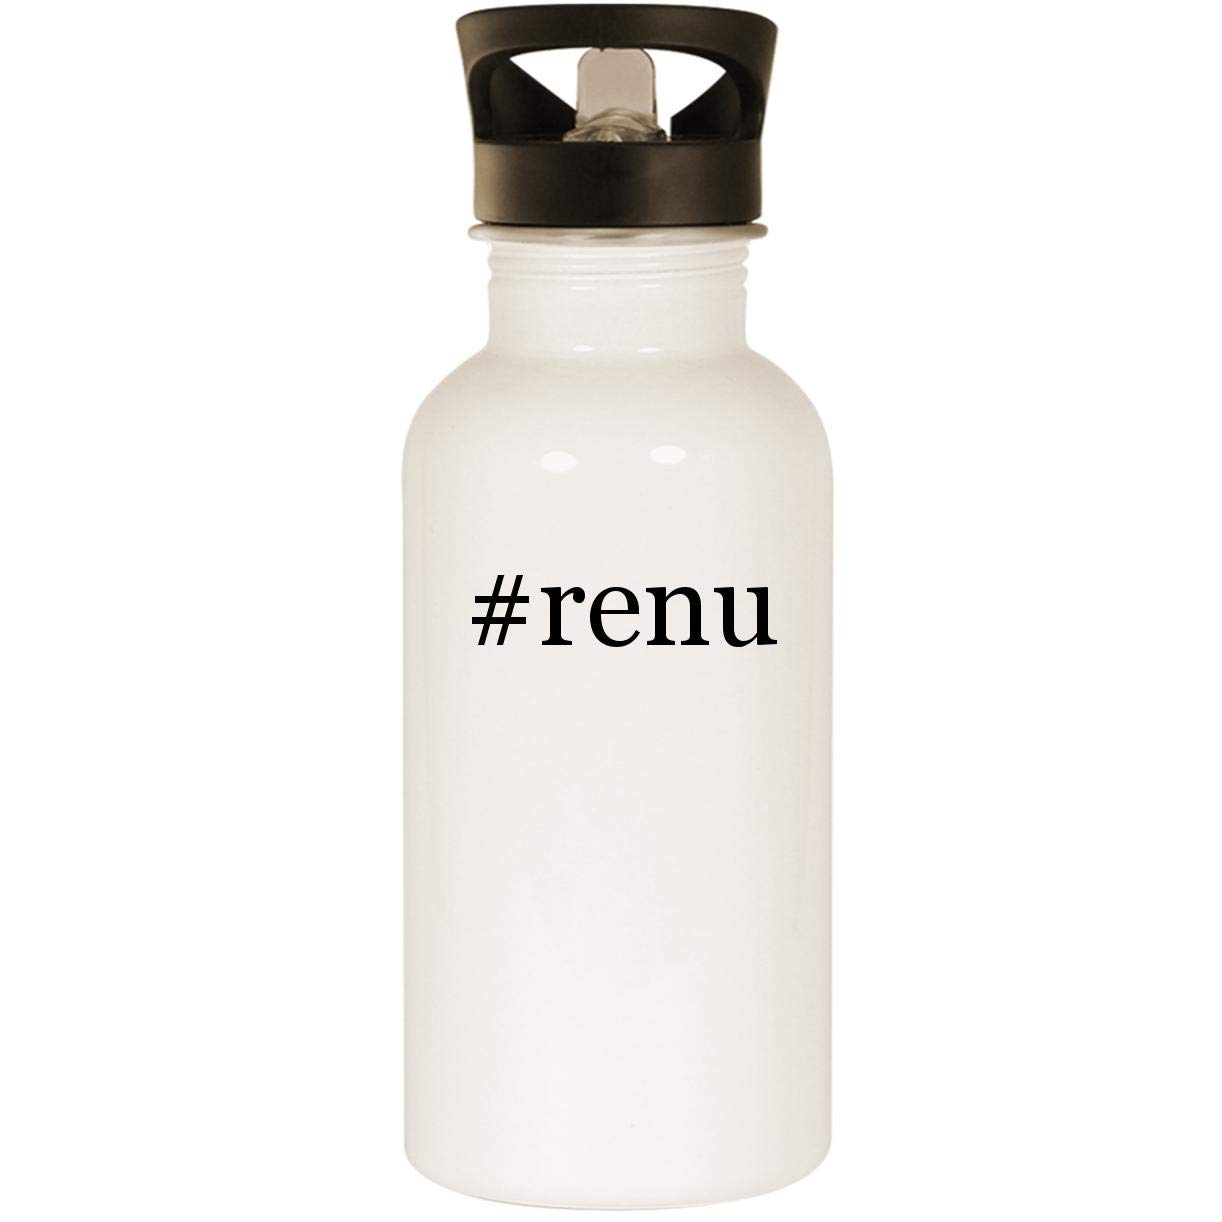 #renu - Stainless Steel 20oz Road Ready Water Bottle, White